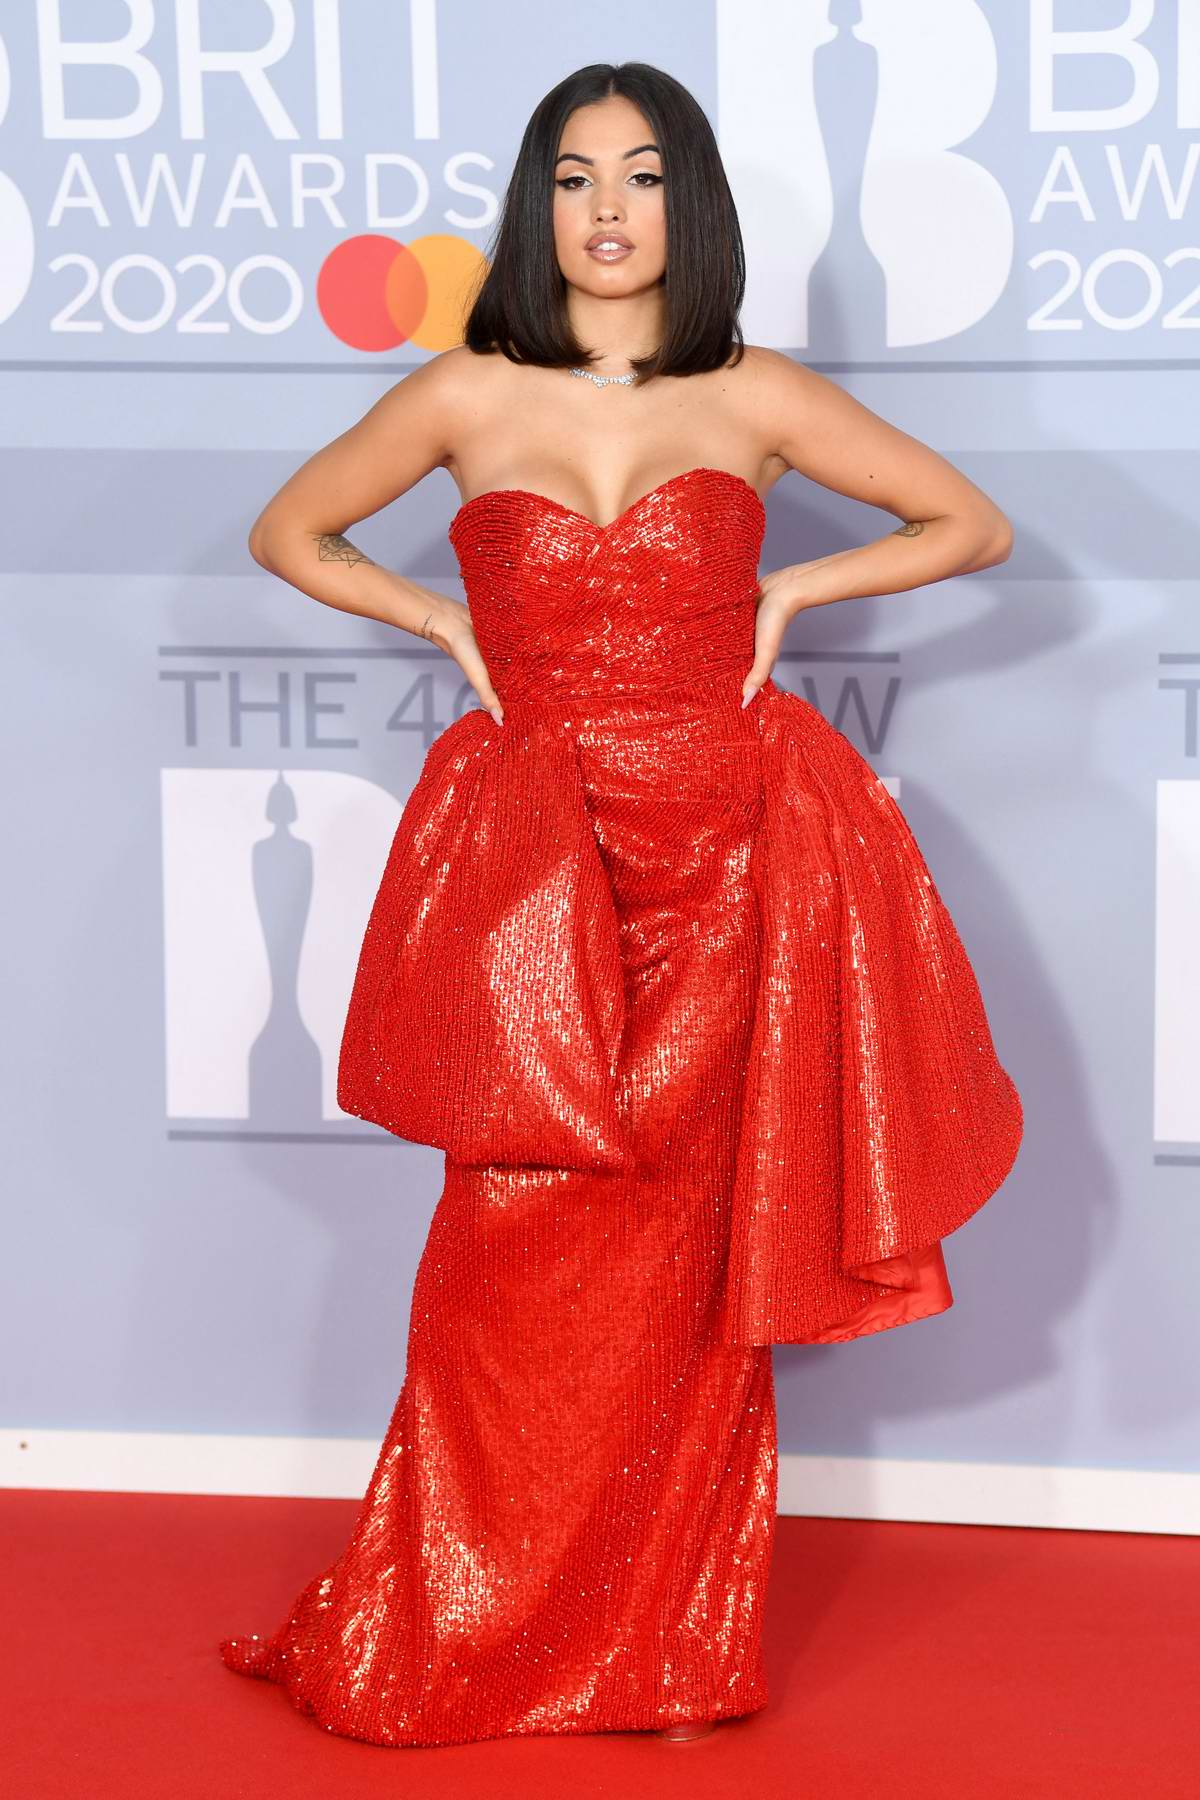 Mabel attends the BRIT Awards 2020 at The O2 Arena in London, UK